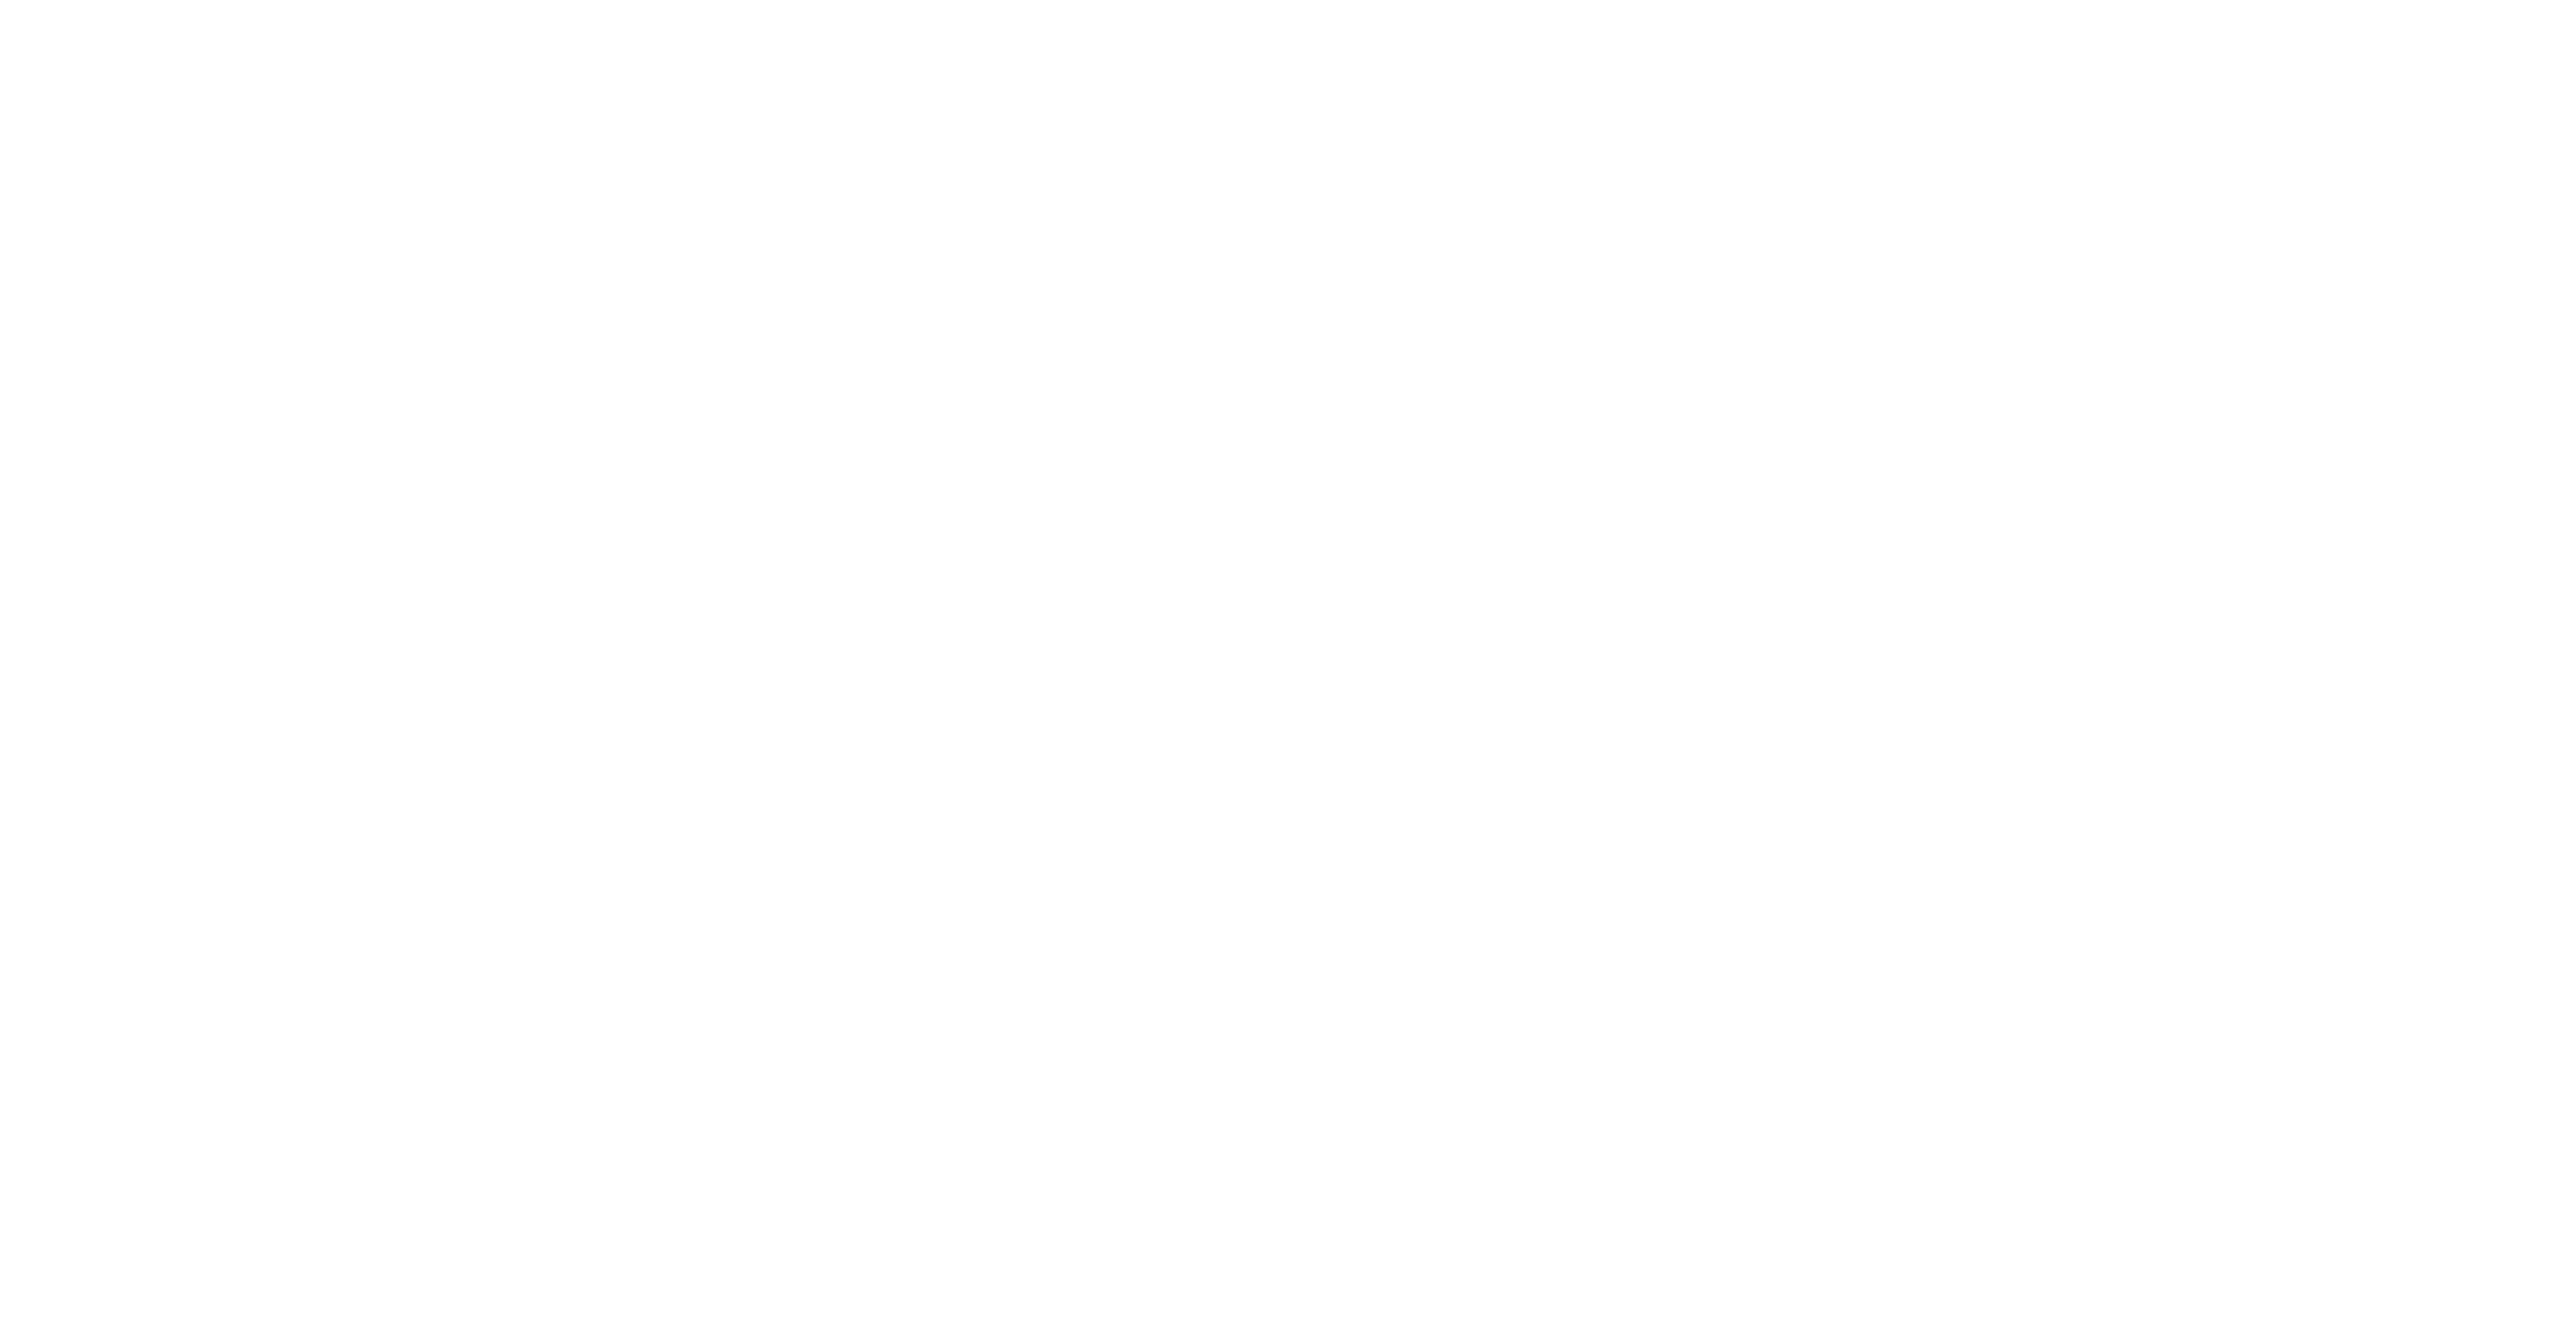 Diggers Beach Cottages